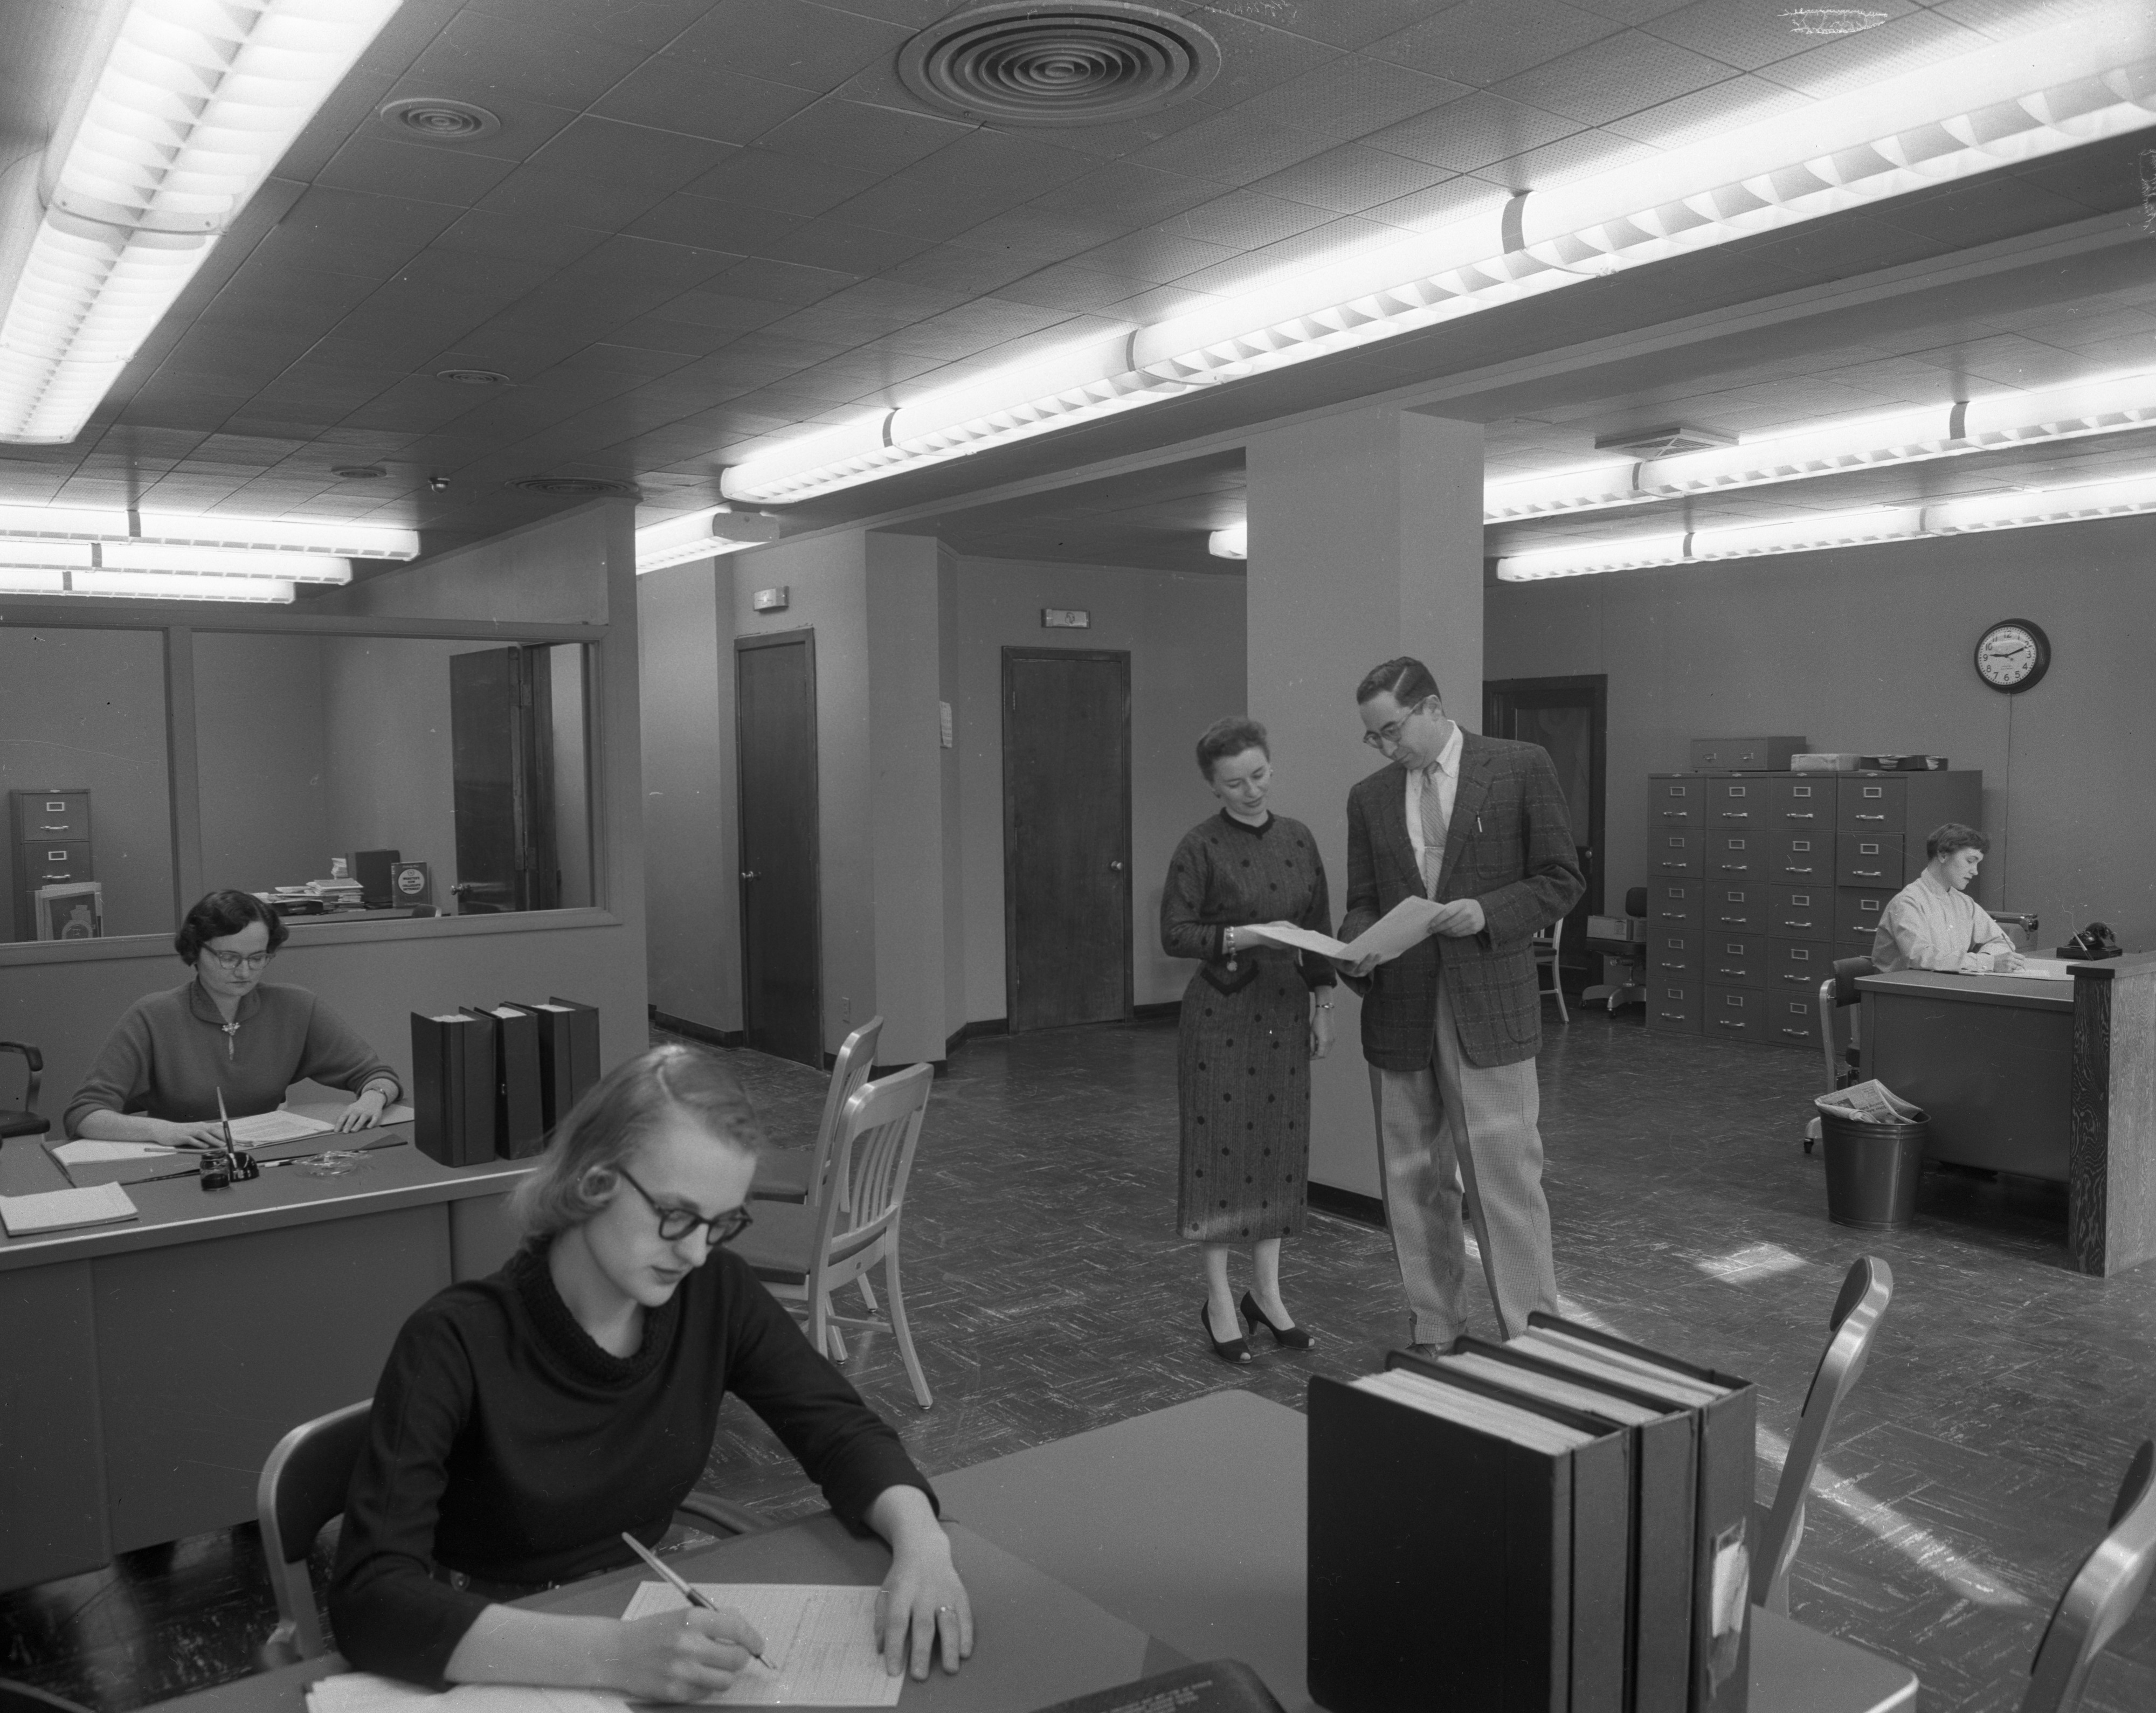 Remodeled Social Security office in Allenel Hotel, March 1957 image